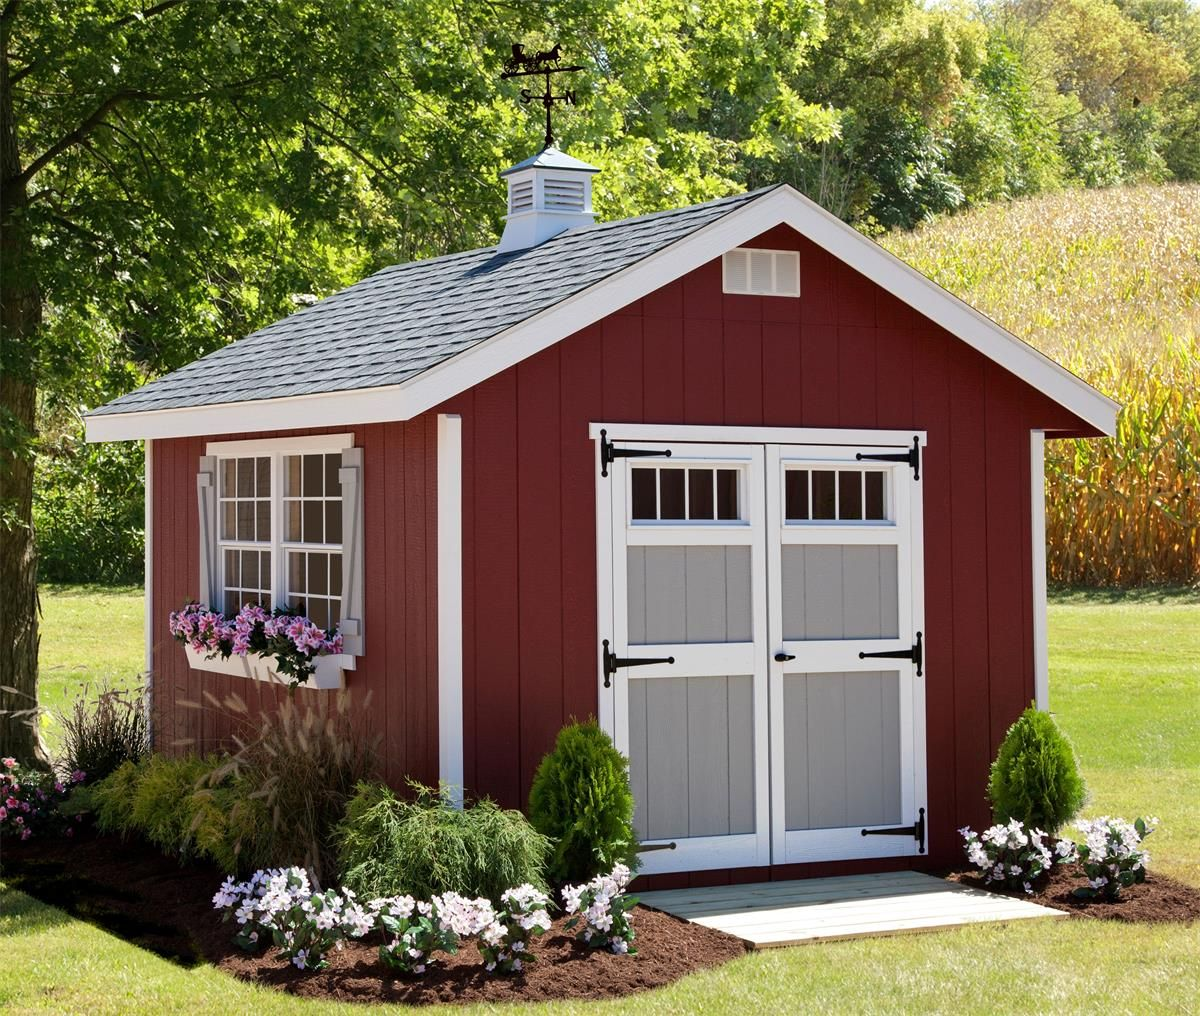 amish made homestead shed kit homestead gardens homesteads and cozy